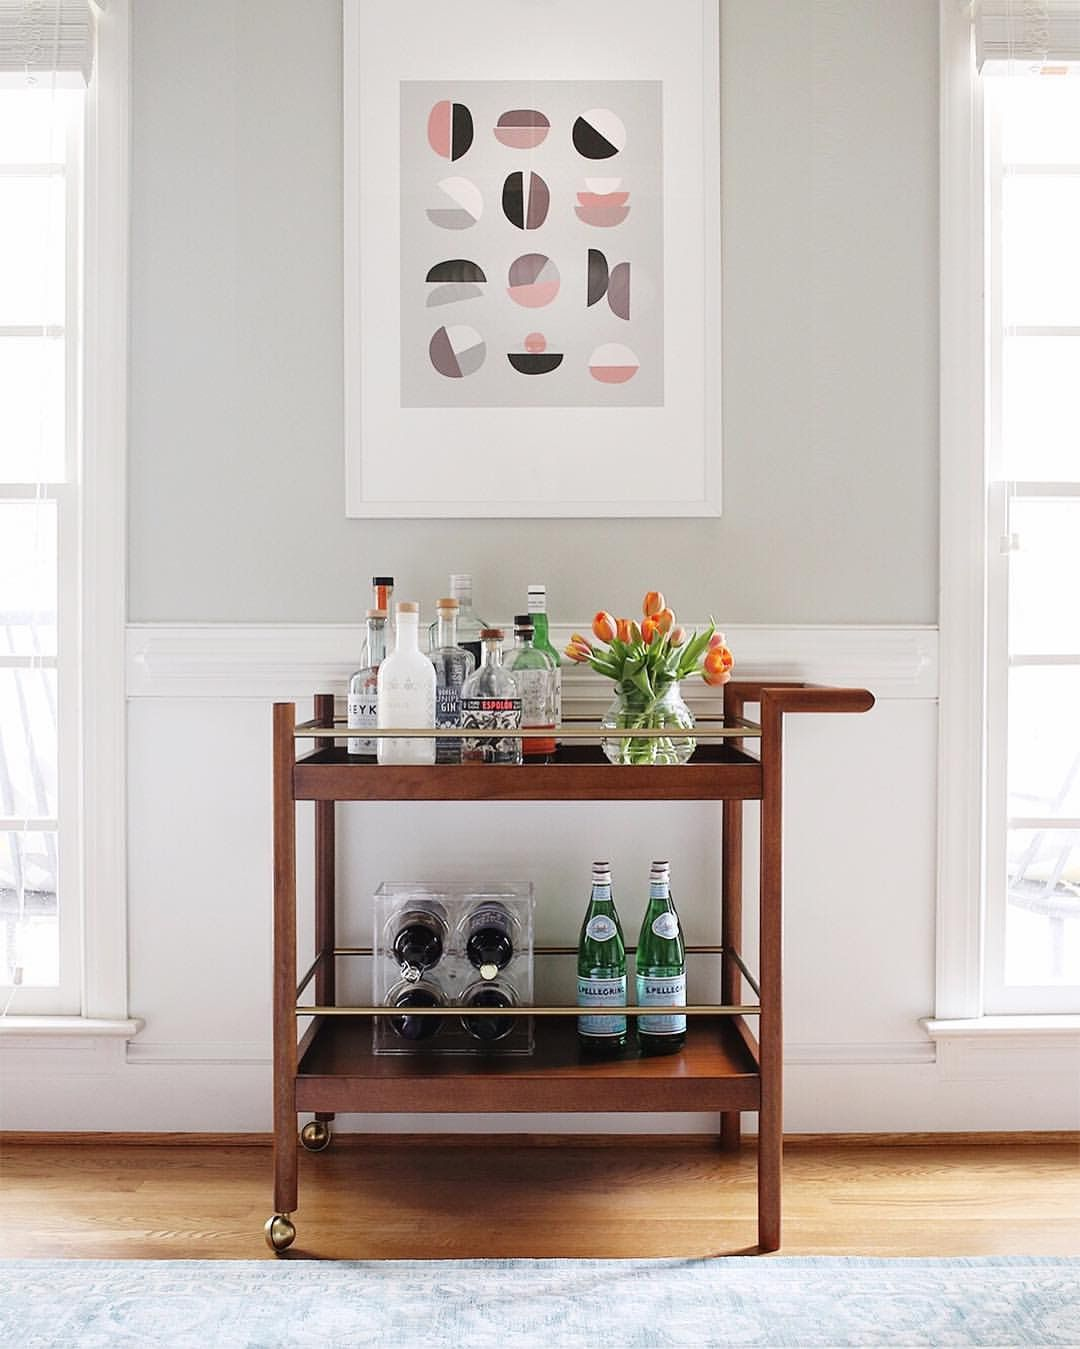 West Elm Mid Century Bar Cart for $279 vs Target Threshold Wood and ...